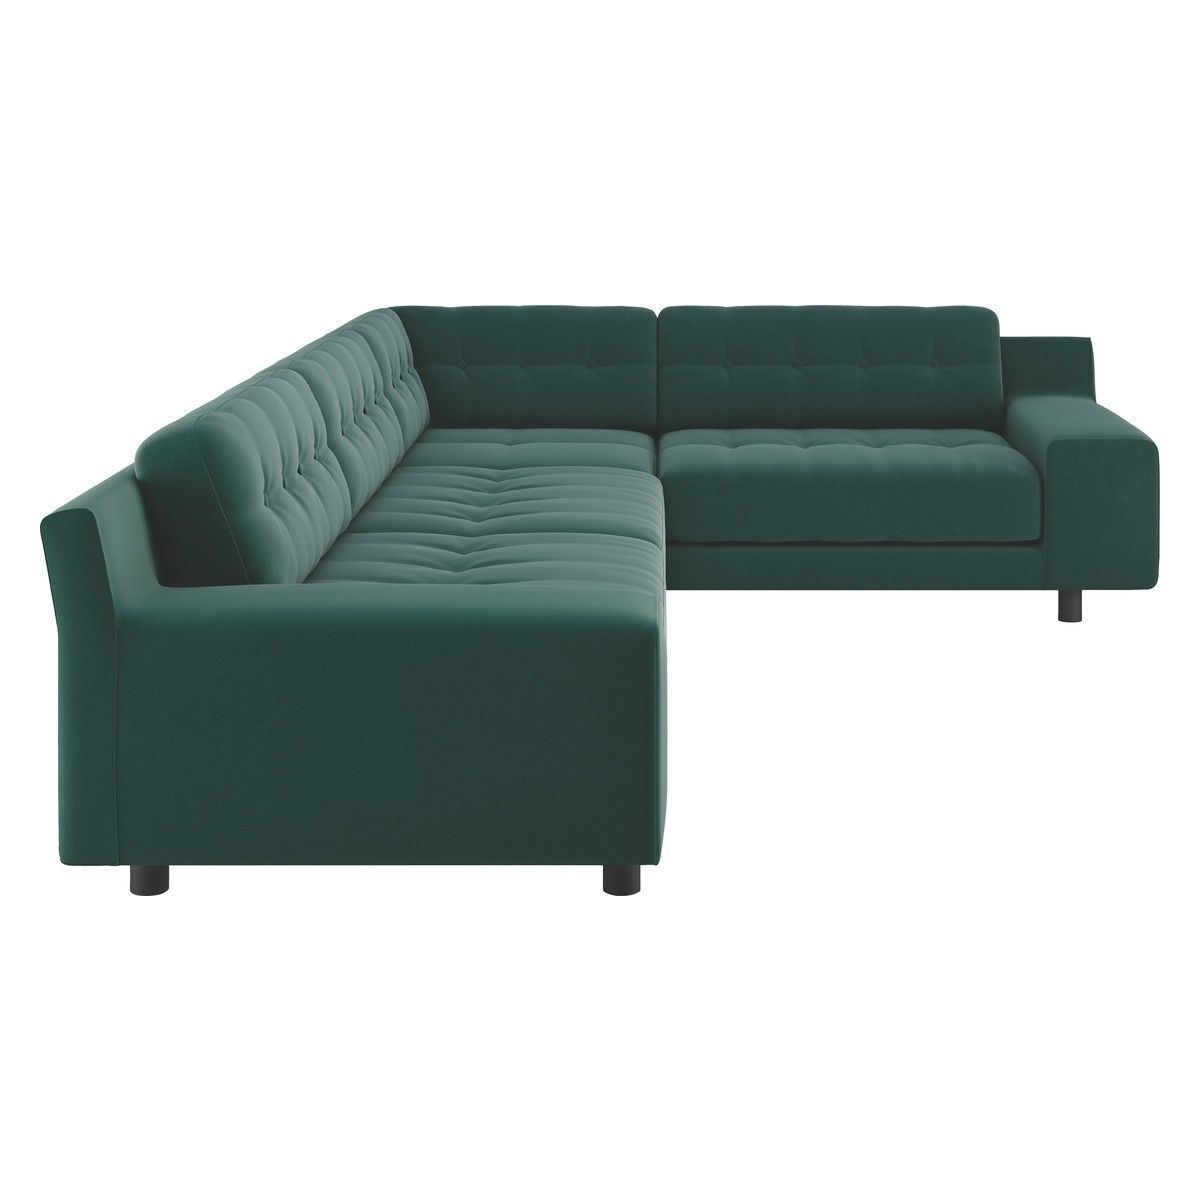 Hendricks Emerald Green Velvet Left Arm Corner Sofa Now At Habitat Uk